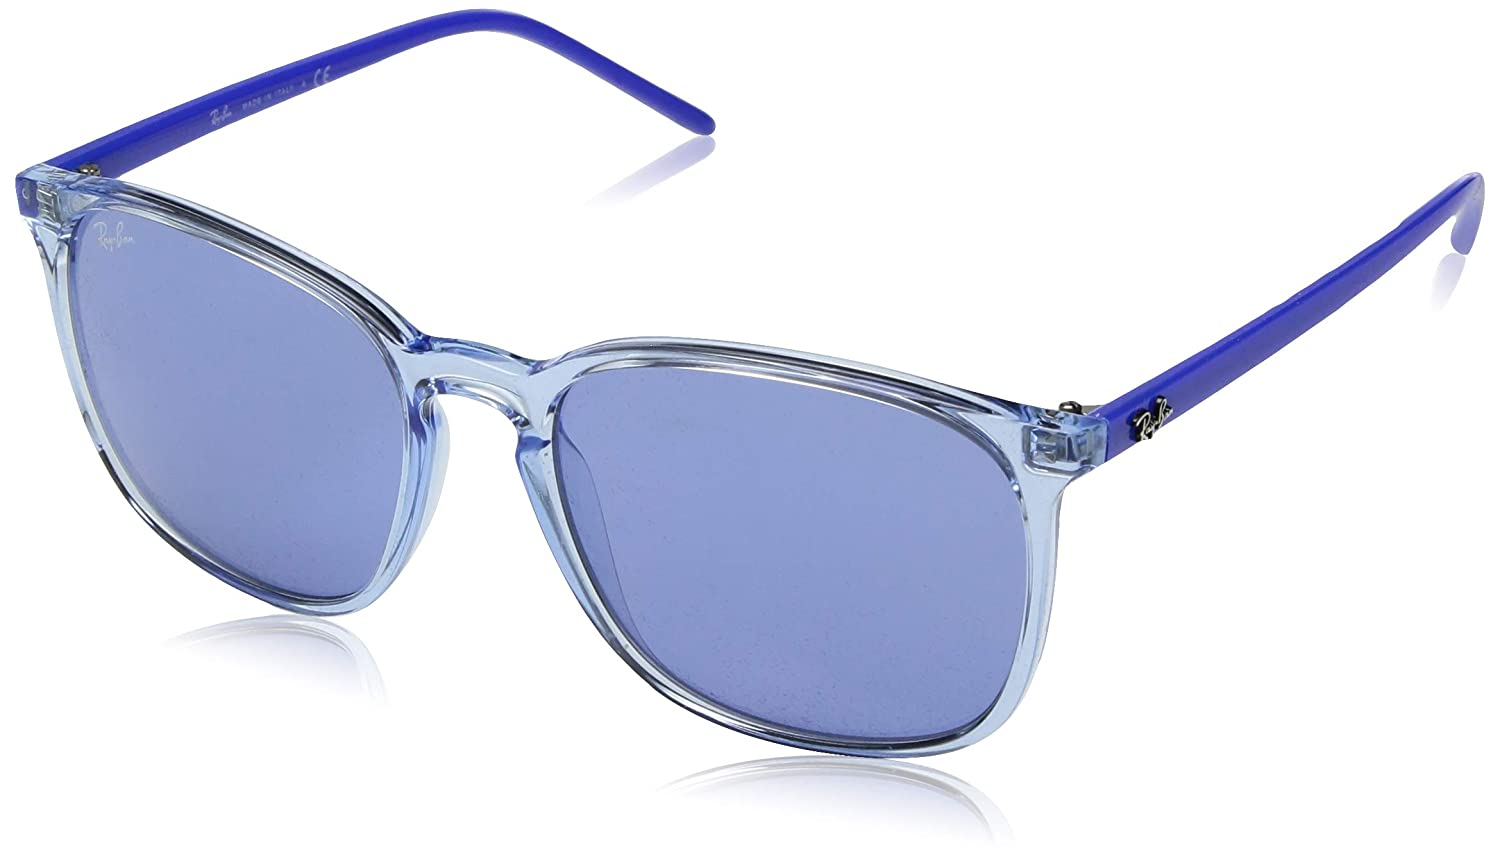 eeed0bd1a33 Amazon.com  Ray-Ban Men s 0rb4387 Round Sunglasses